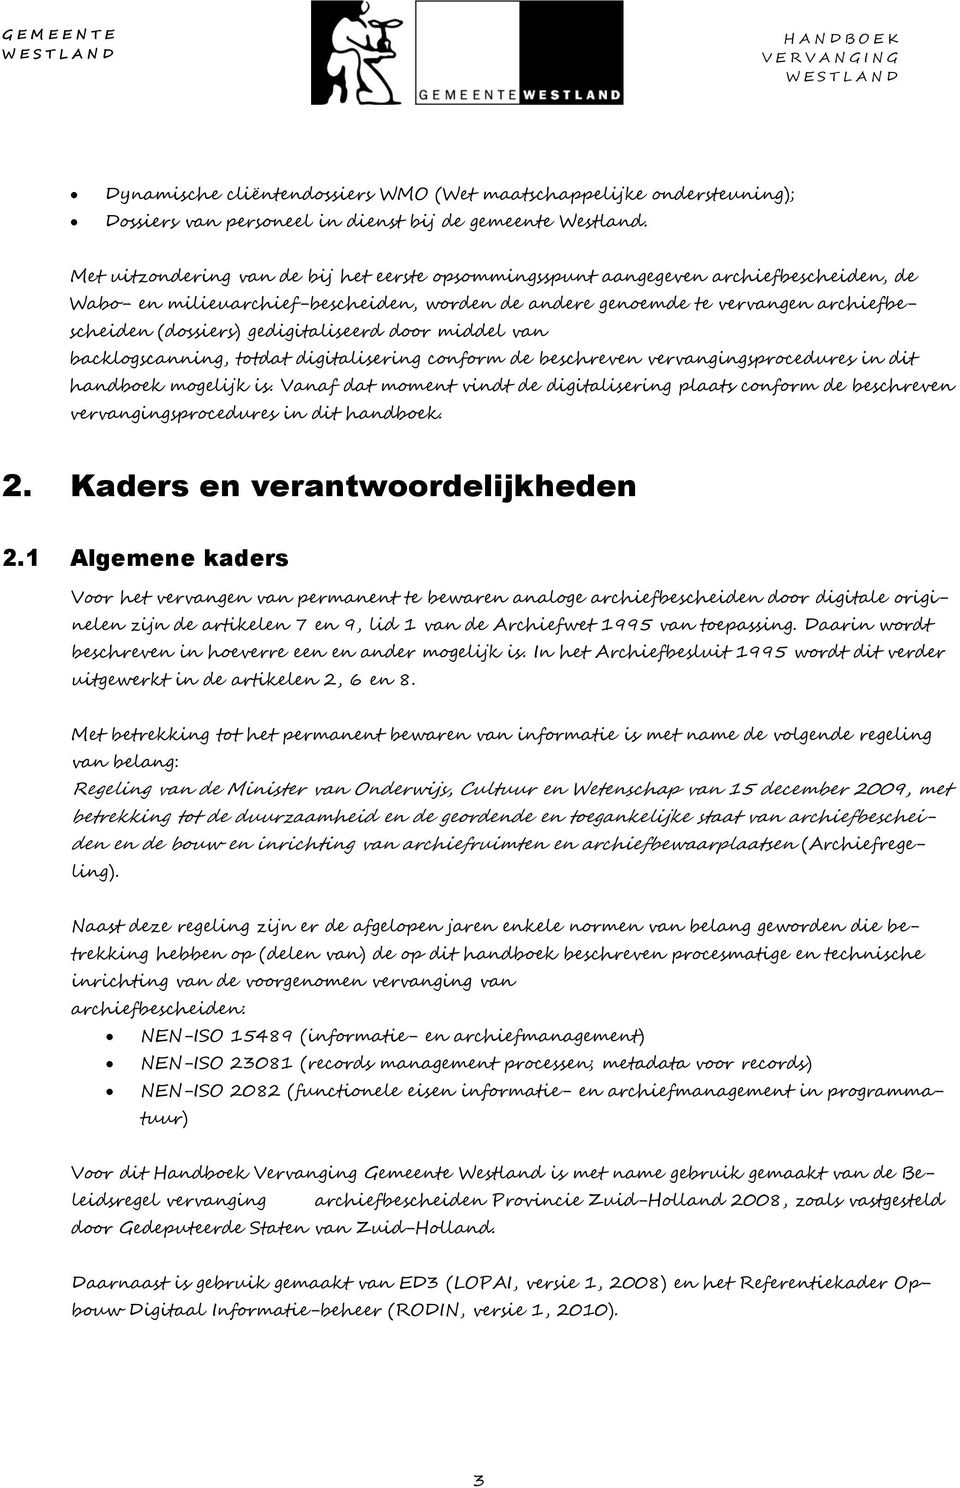 gedigitaliseerd door middel van backlogscanning, totdat digitalisering conform de beschreven vervangingsprocedures in dit handboek mogelijk is.